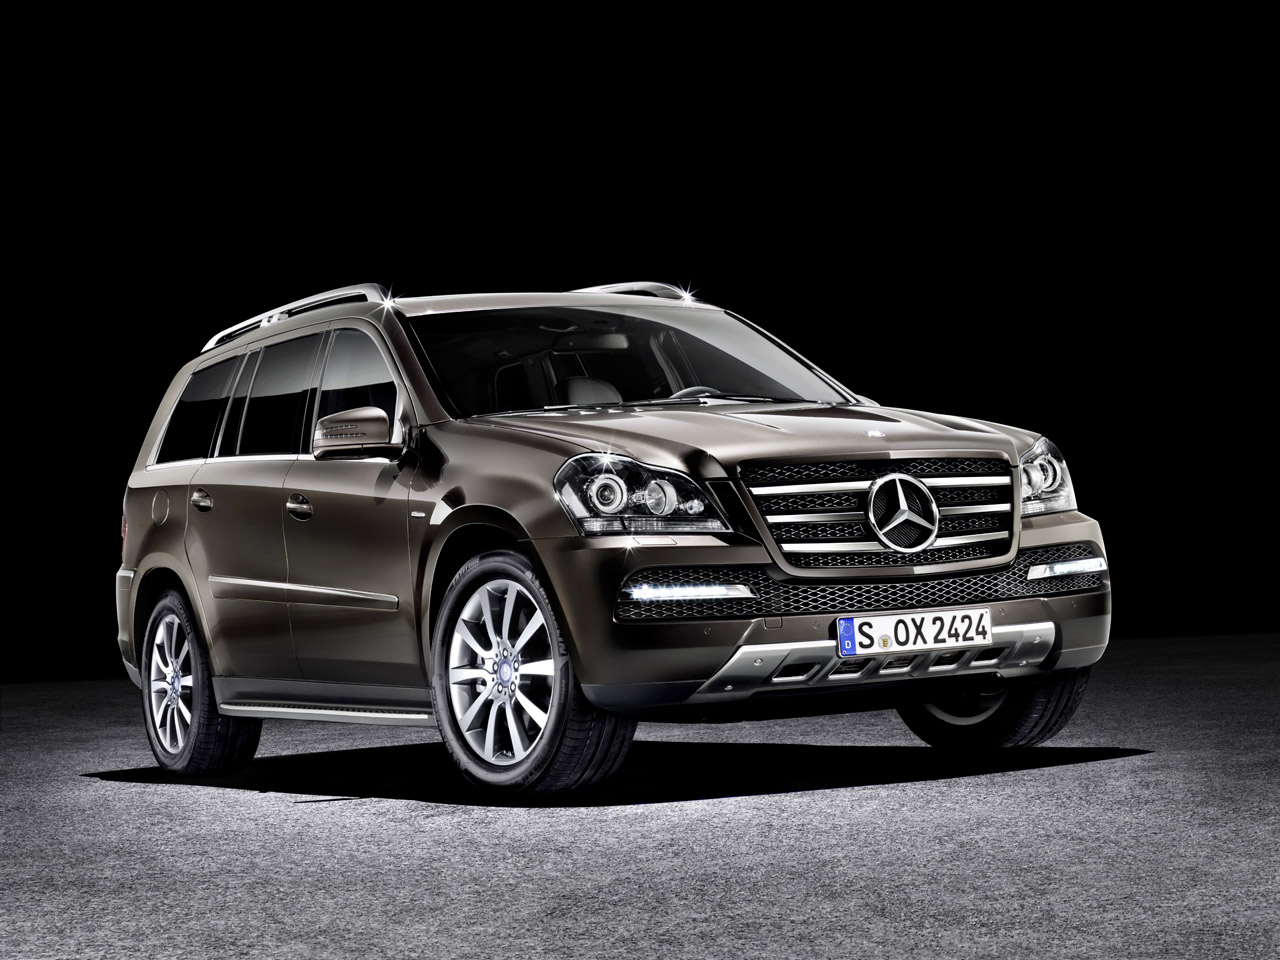 mercedes benz gl class 350 cdi 4matic gallery car hd wallpapers prices review. Black Bedroom Furniture Sets. Home Design Ideas